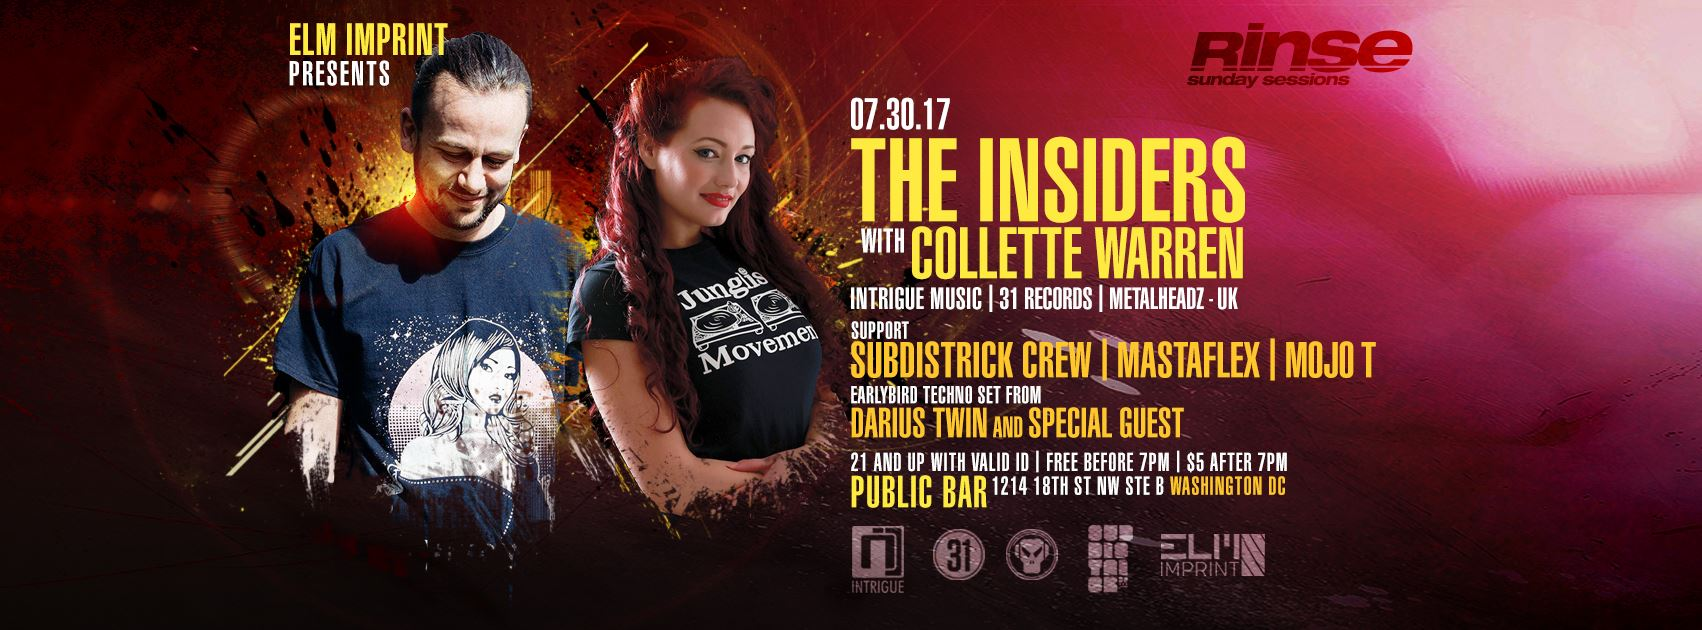 Rinse (Sunday Sessions) The Insiders w/ Collette Warren, SubDistrick crew + more! [06.13.17]